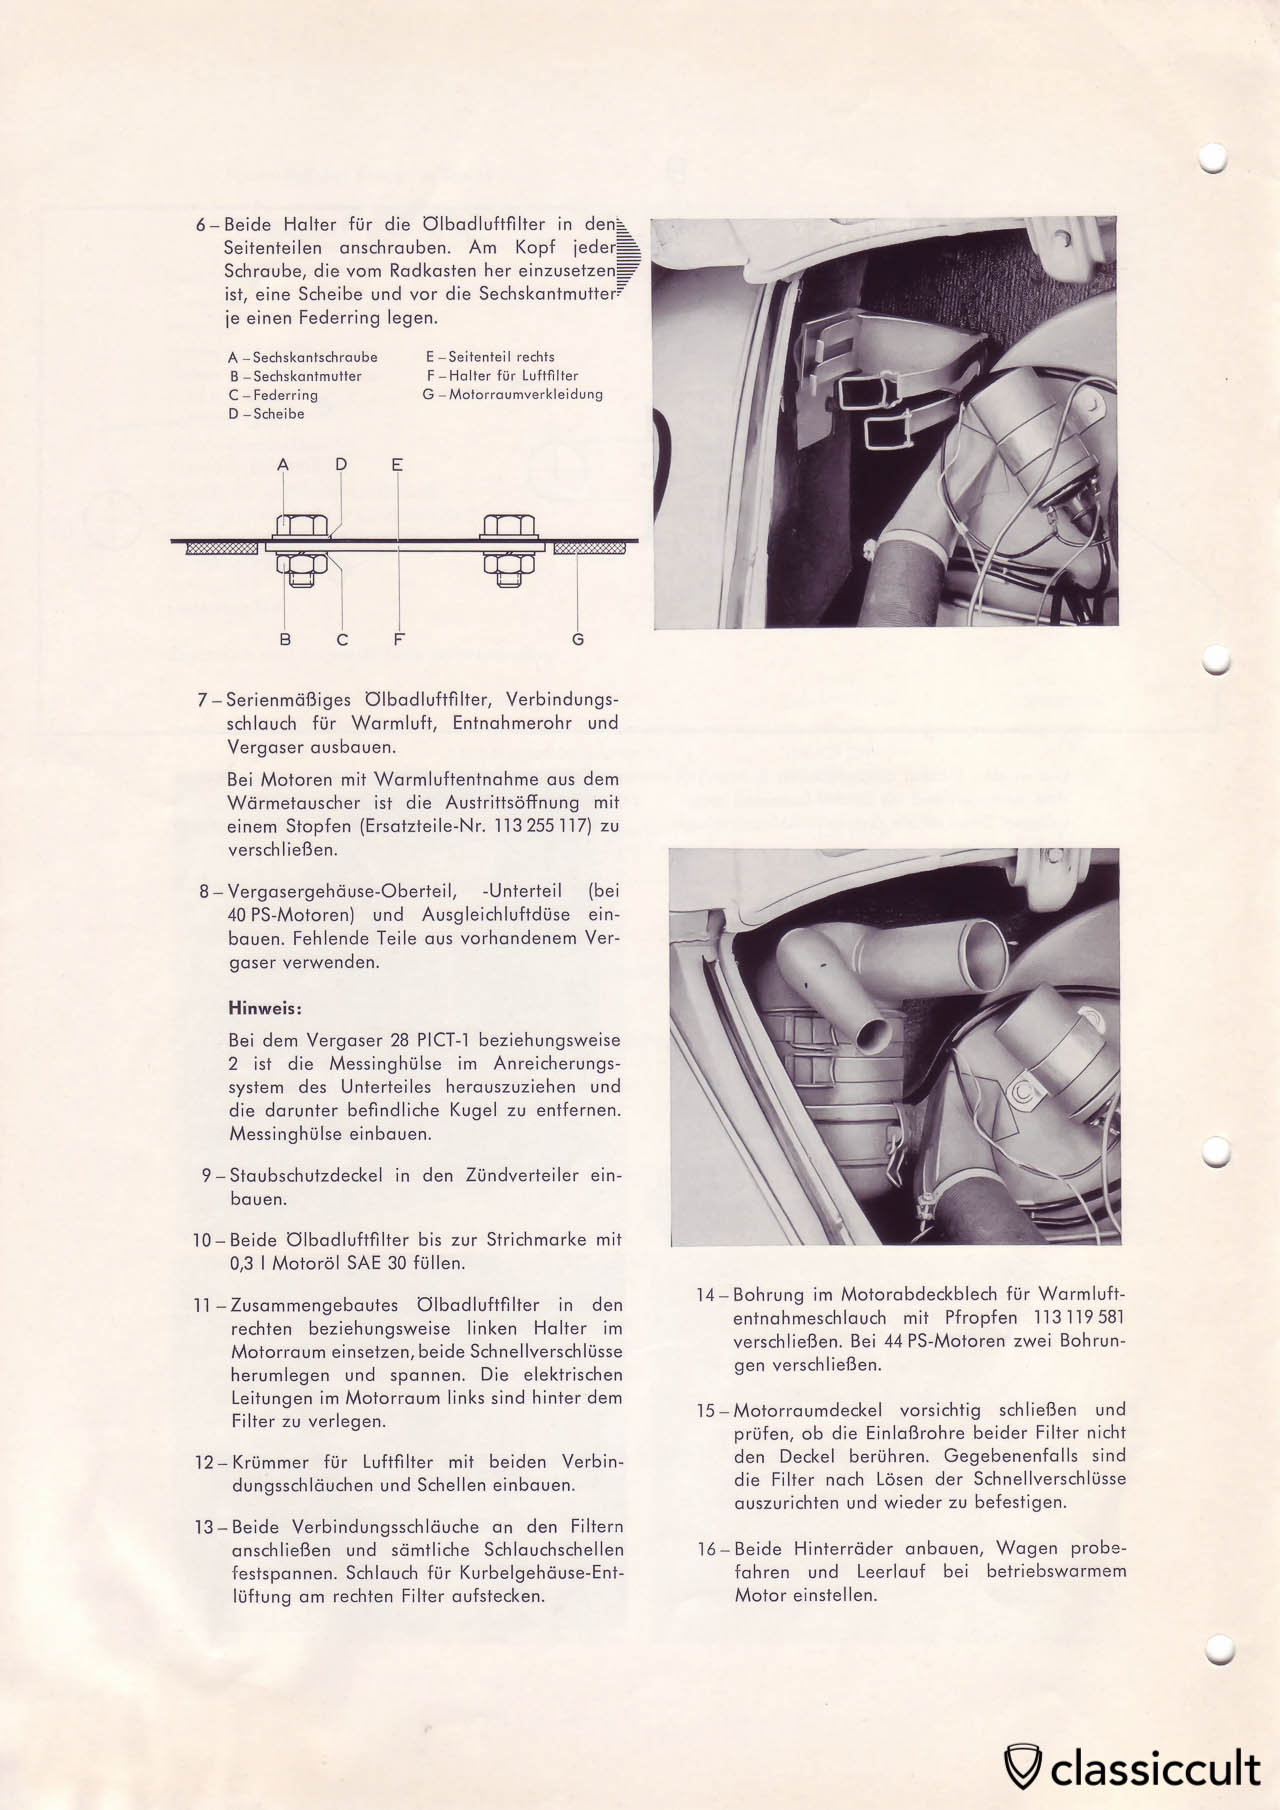 Mounting instructions for dusty conditions air cleaner in VW Beetle.